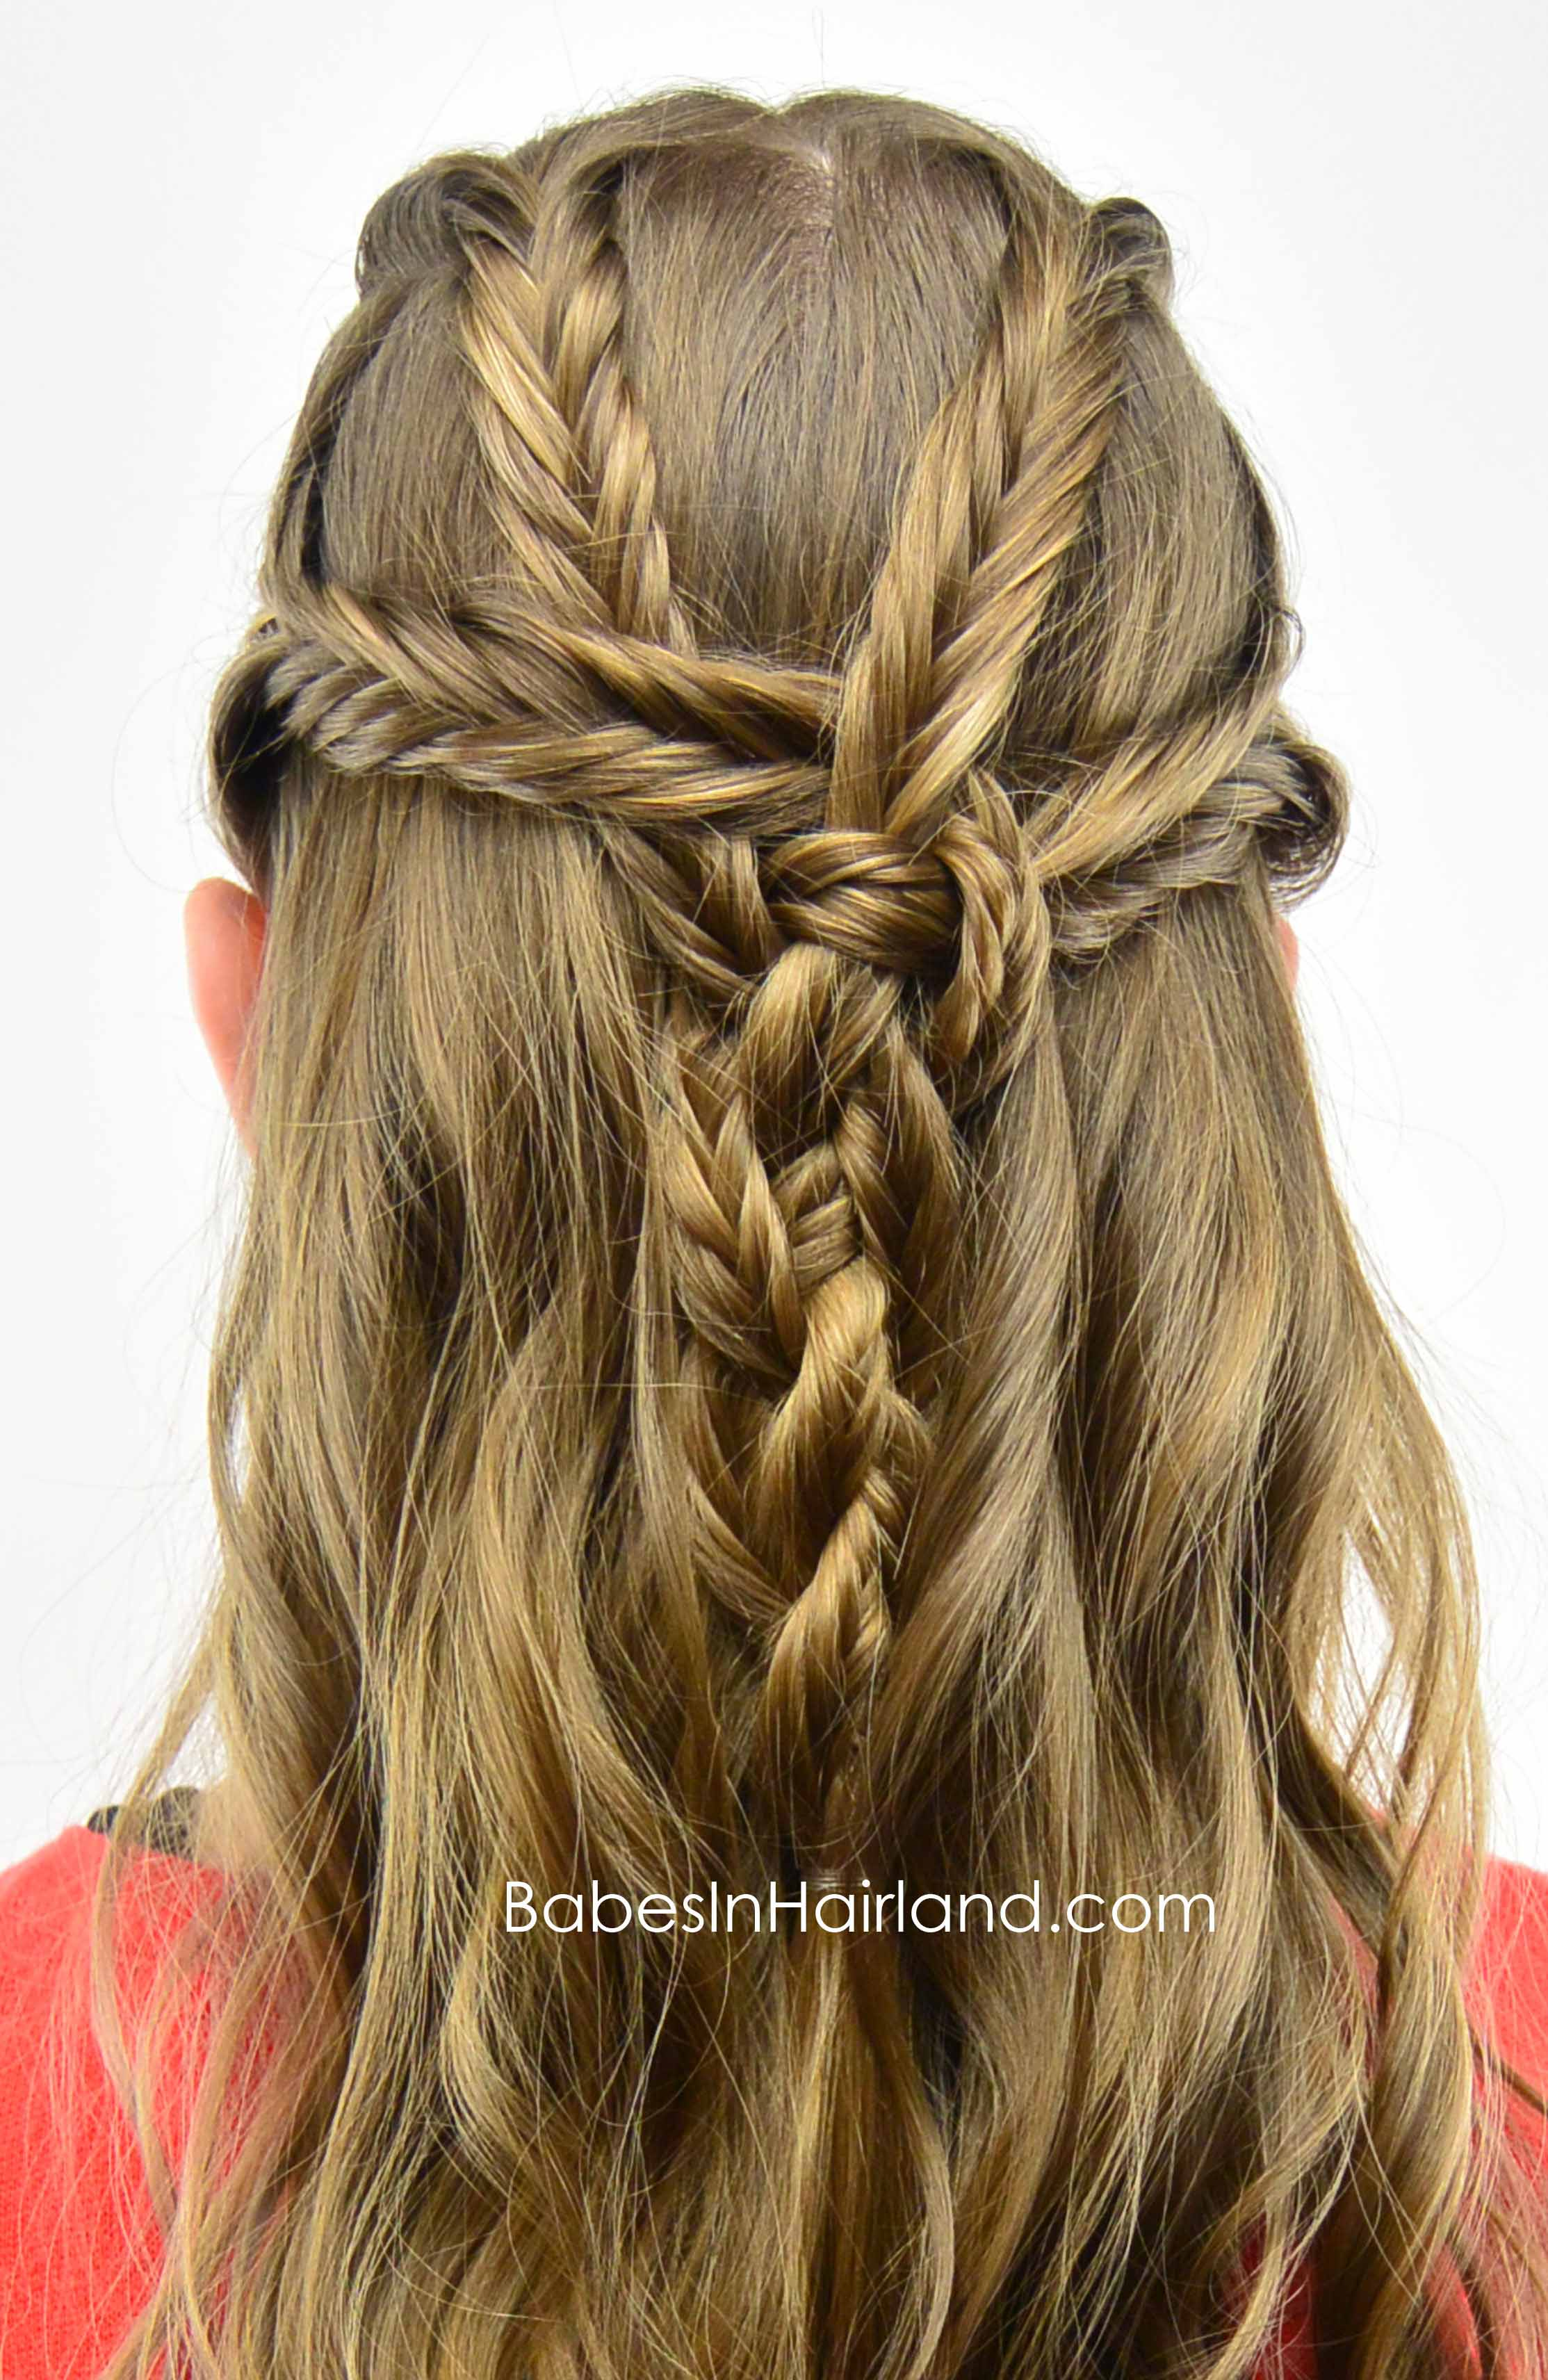 fishbone hair styles fishbone braided pullback in hairland 6601